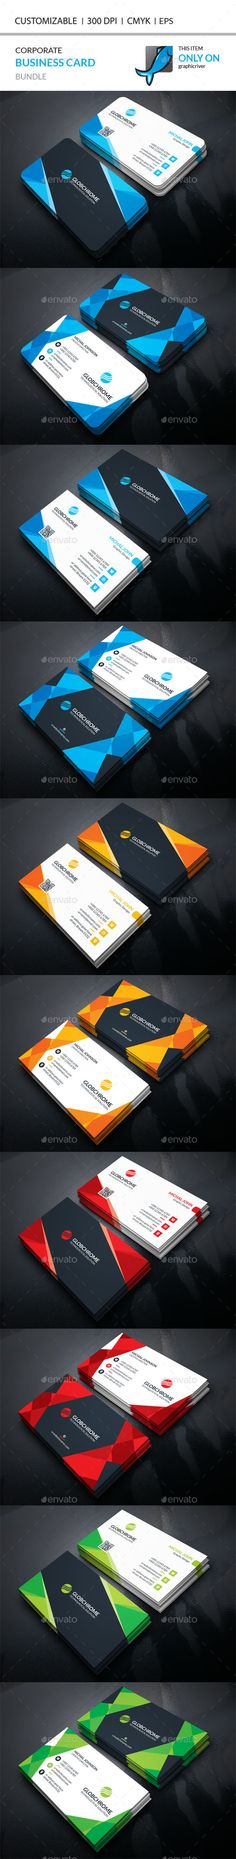 2 Corporate Business Card Templates Vector EPS, AI Illustrator. Download here: https://graphicriver.net/item/corporate-business-card-bundle/17163885?ref=ksioks